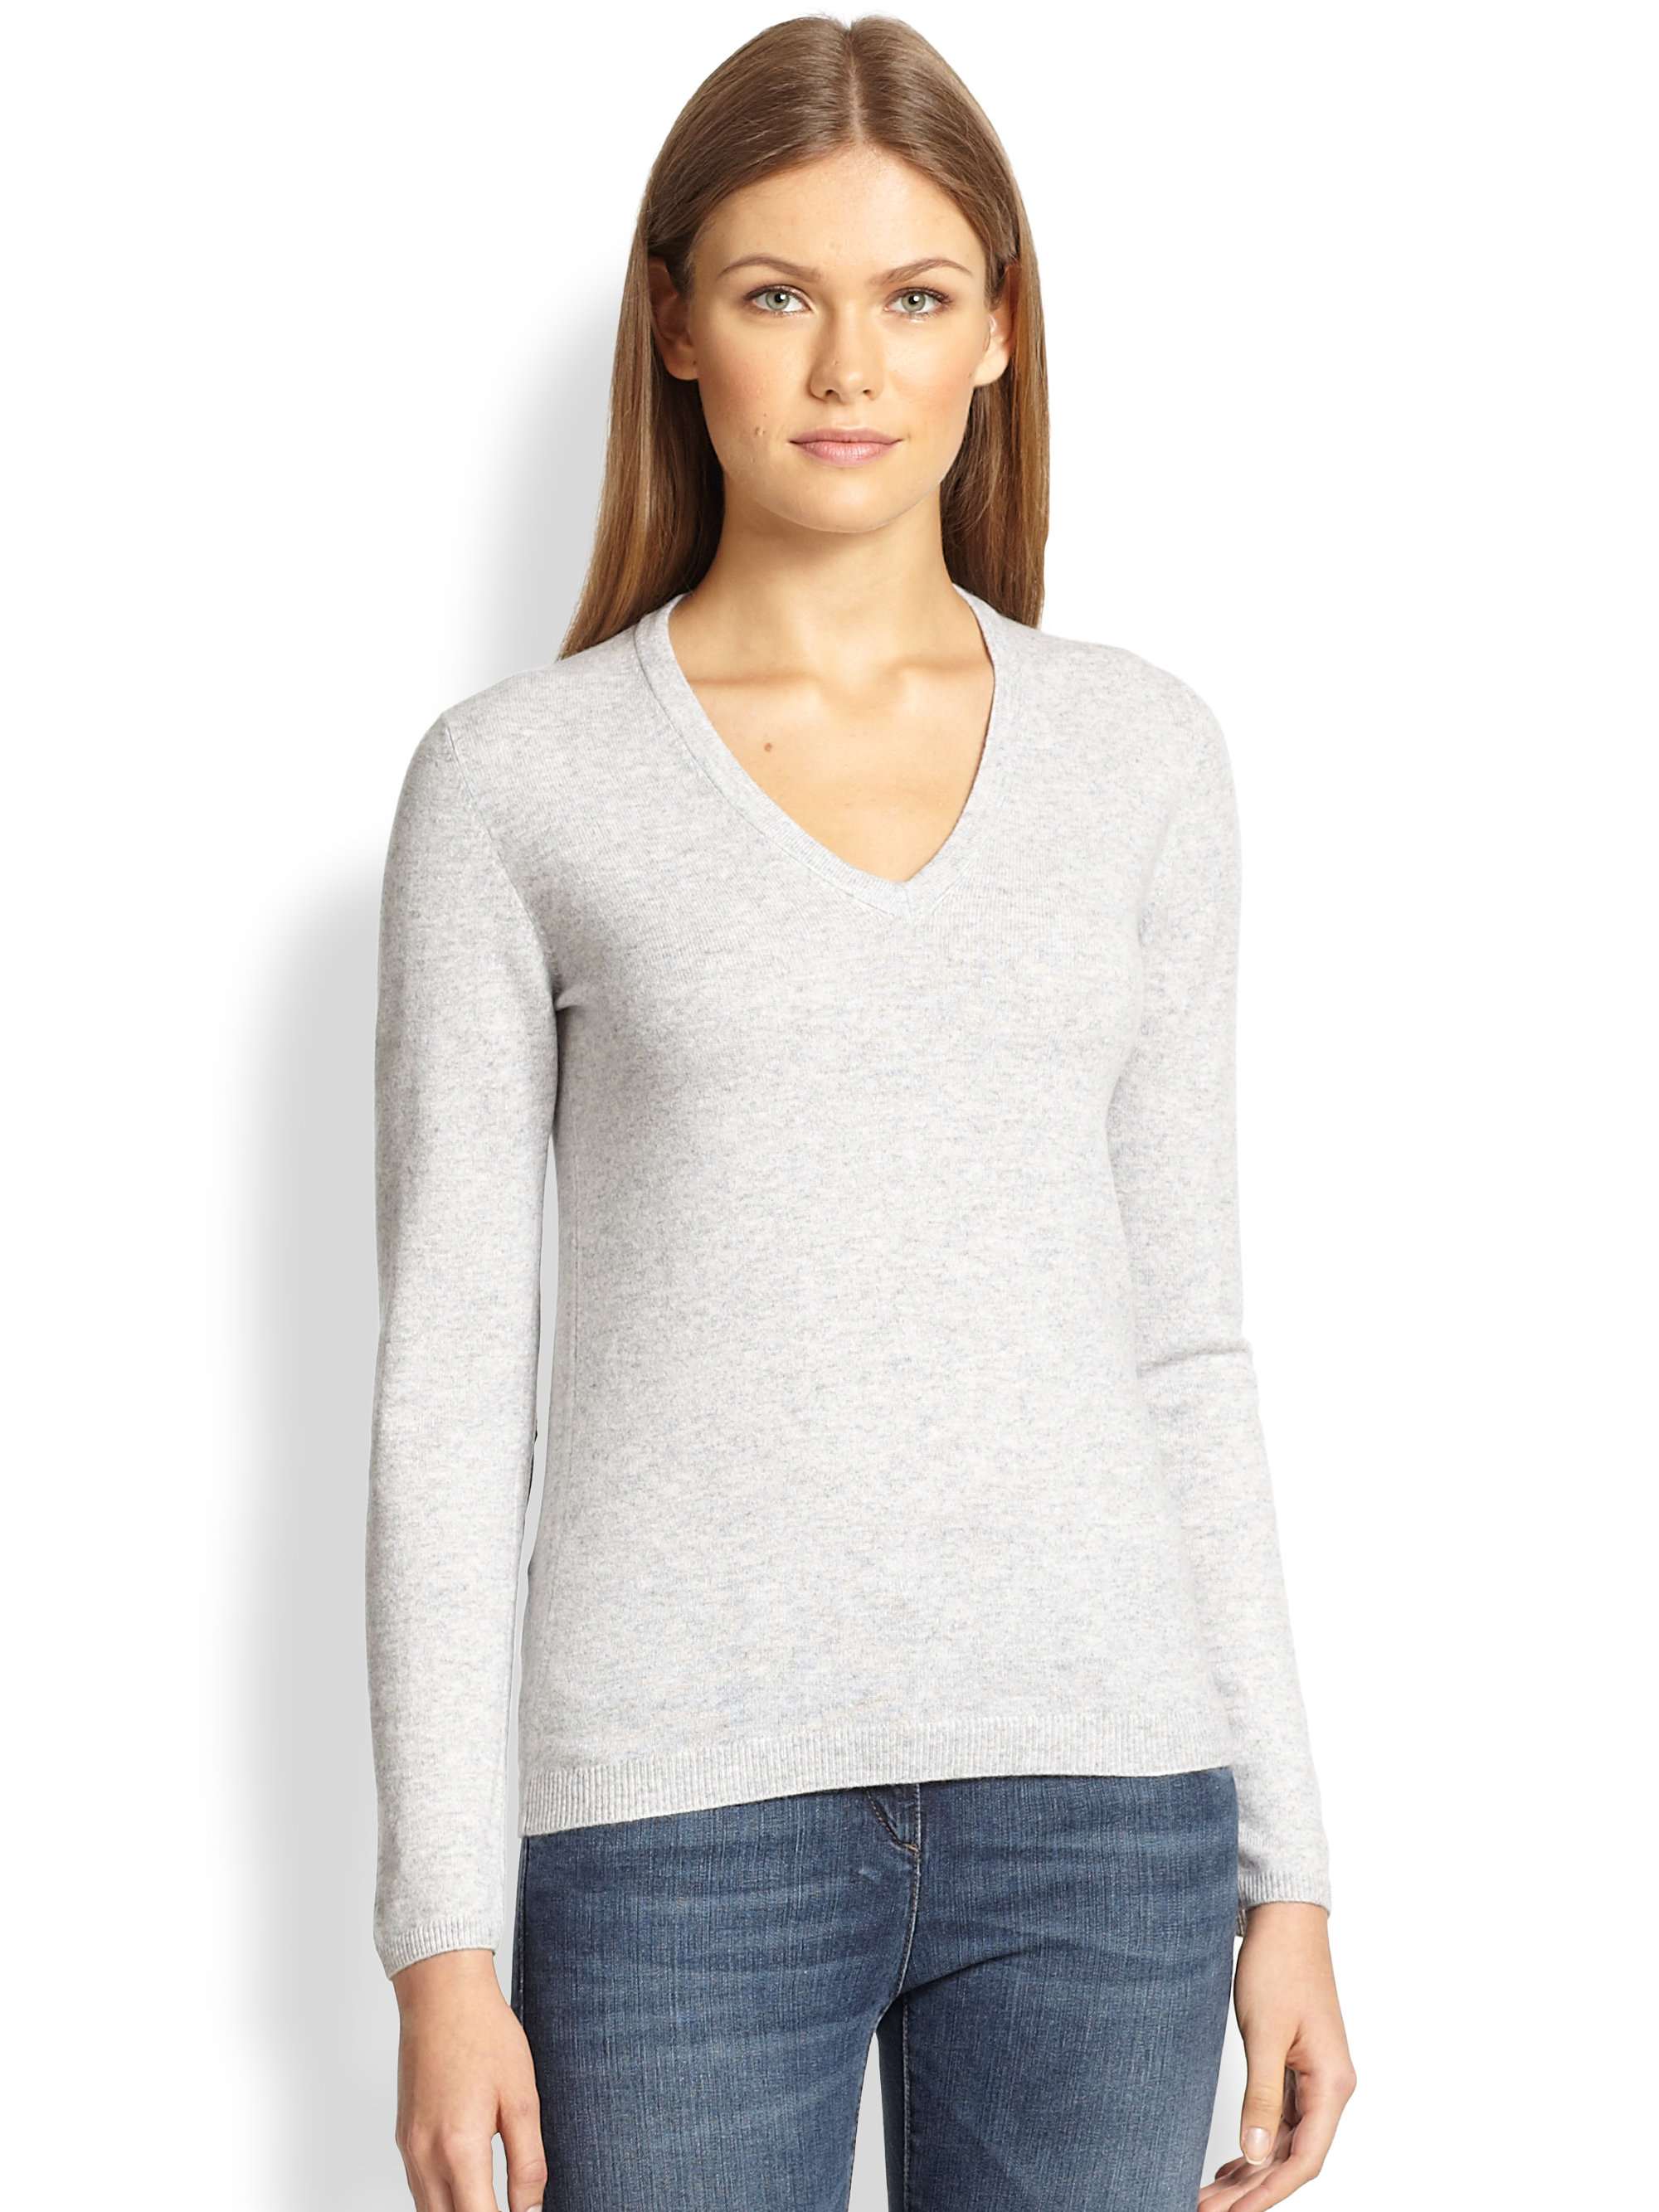 Browse an amazing collection of women's sweaters at HSN and stay warm and cozy. Choose from cardigans, pullovers and other incredible sweaters for women.